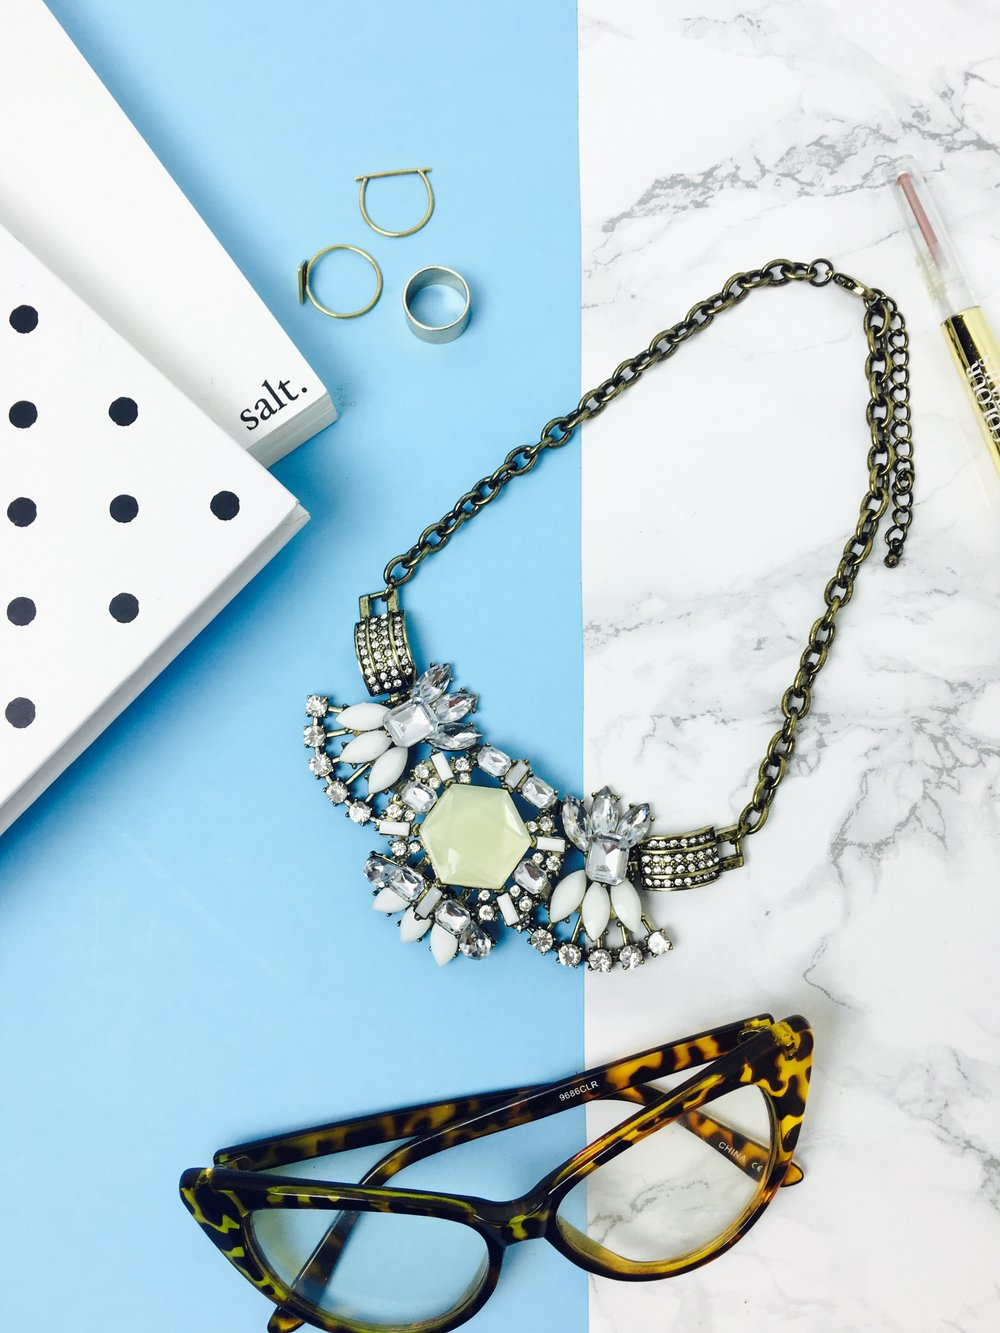 7 Global Jewellery Trends for 2019 to Keep Up Your Style Game